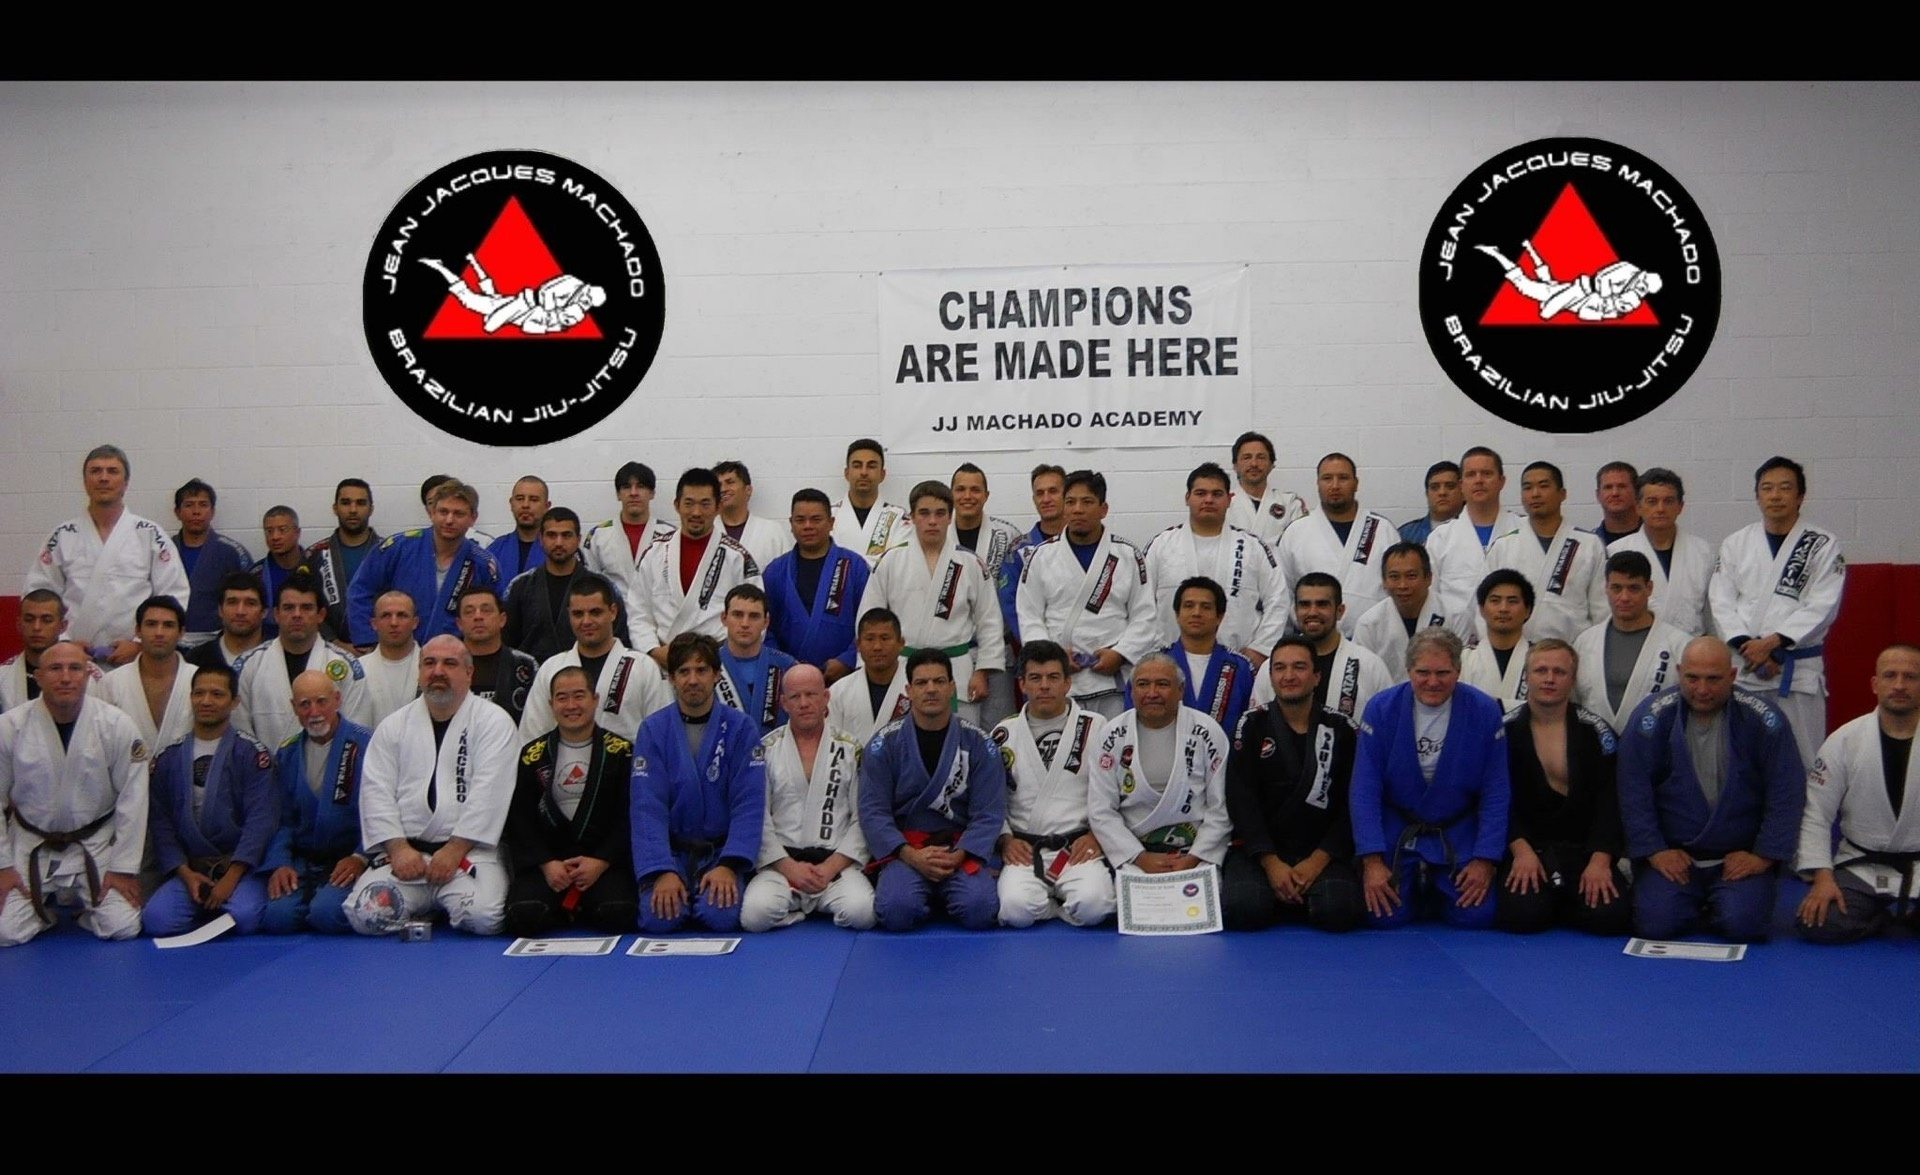 Are BJJ and wrestling a great combination to learn? - Quora